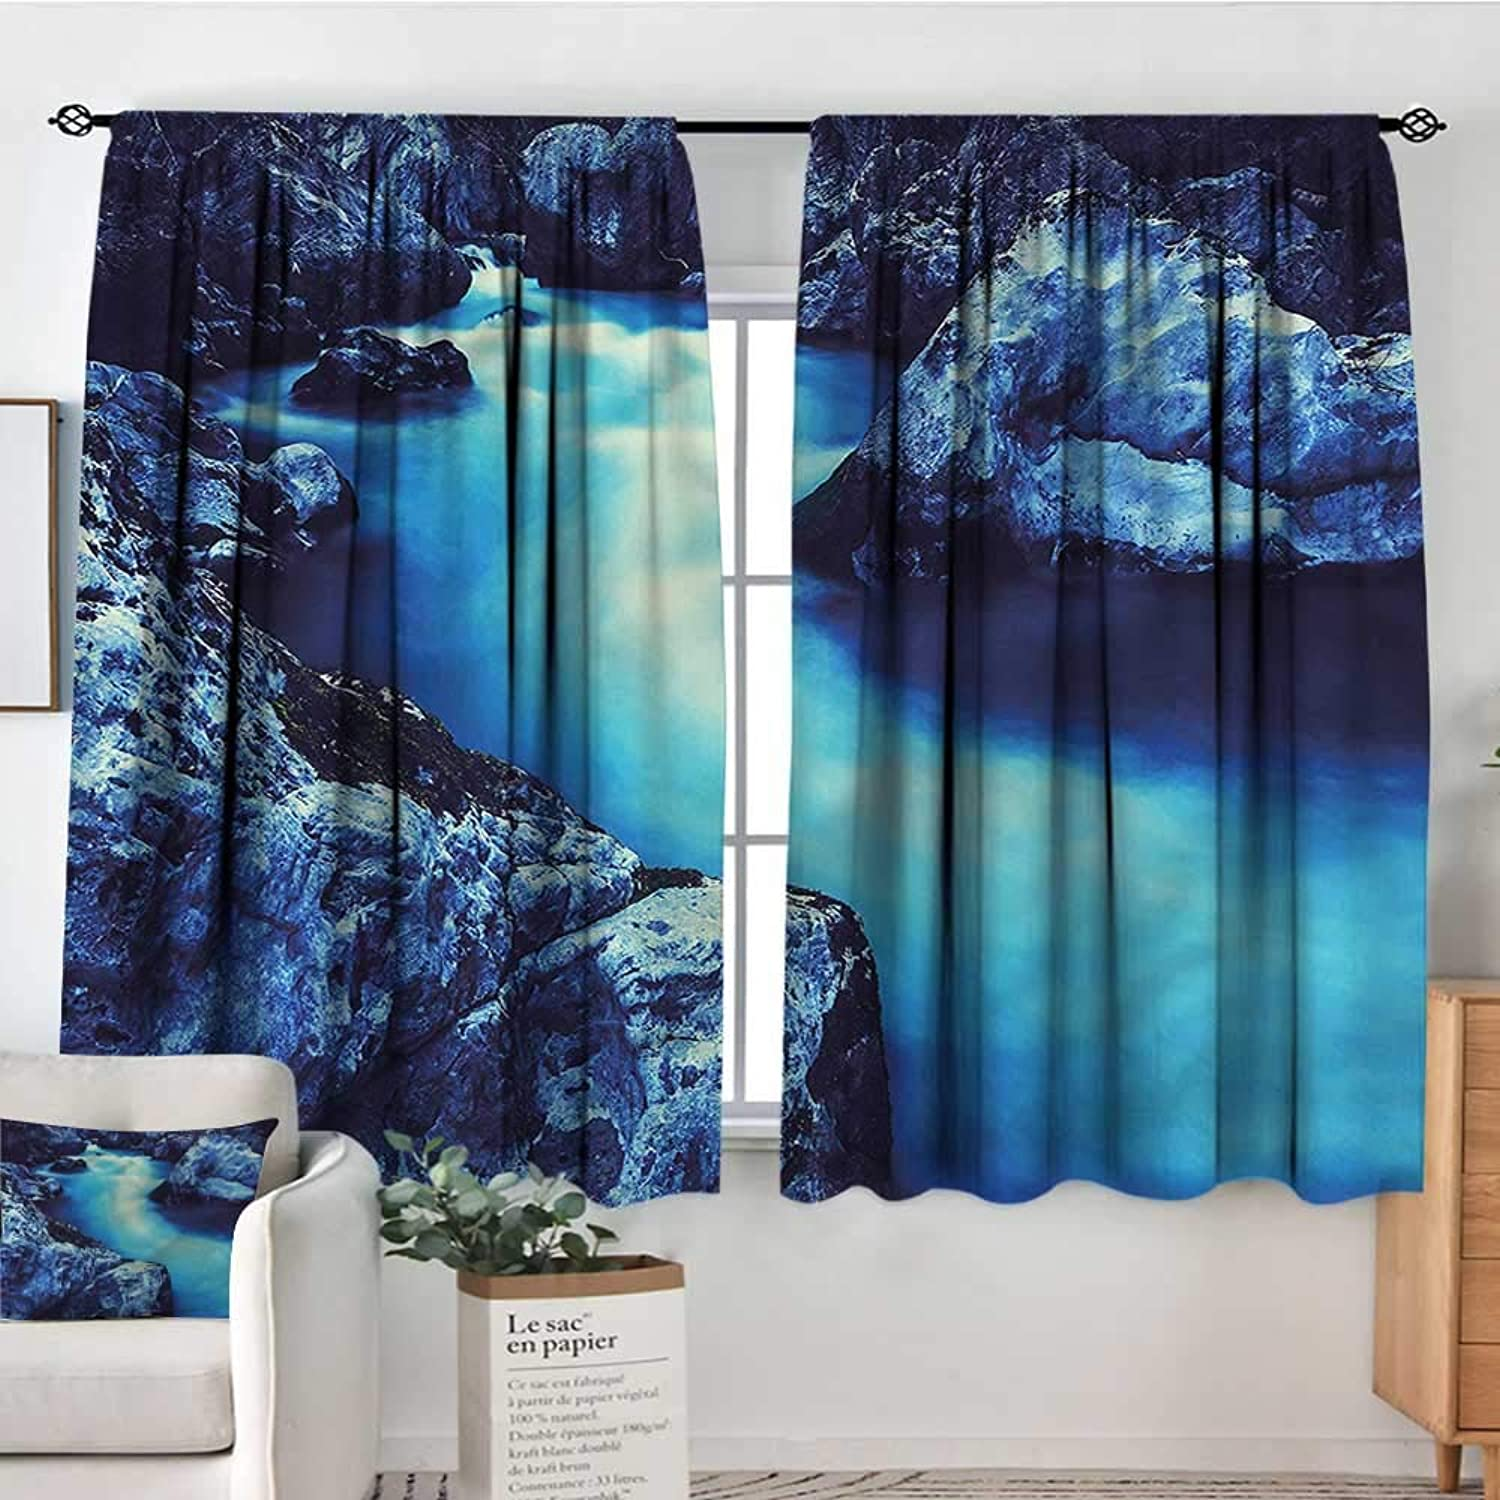 Familytaste Waterfall,Printed Backout Curtains Frozen Lake in Winter 42 X54  Nursery and Kids Bedroom Curtain